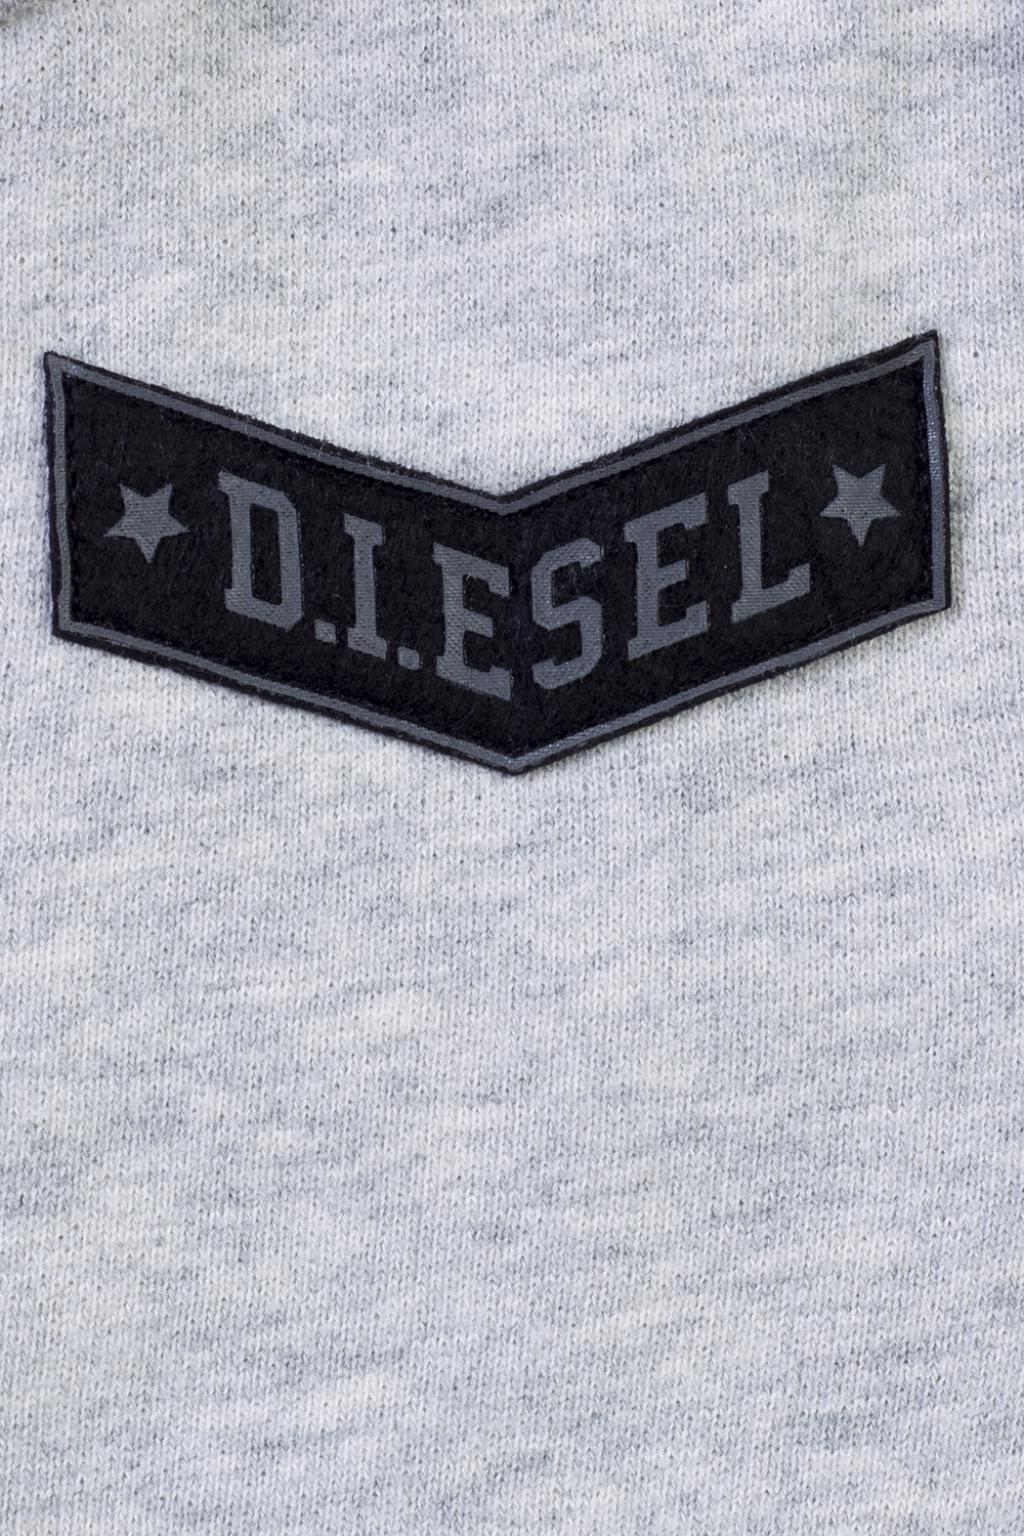 Diesel Kids Patched sweatshirt